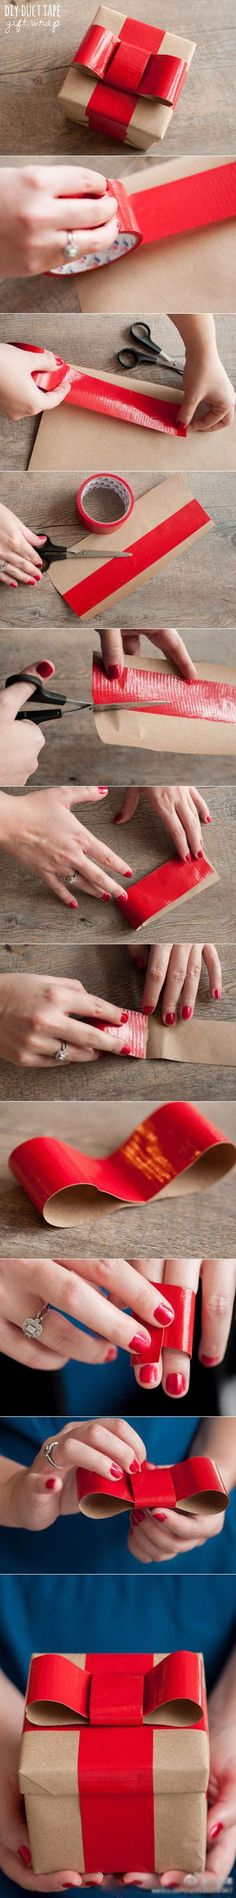 Great Gift Idea | DIY & Crafts Tutorials